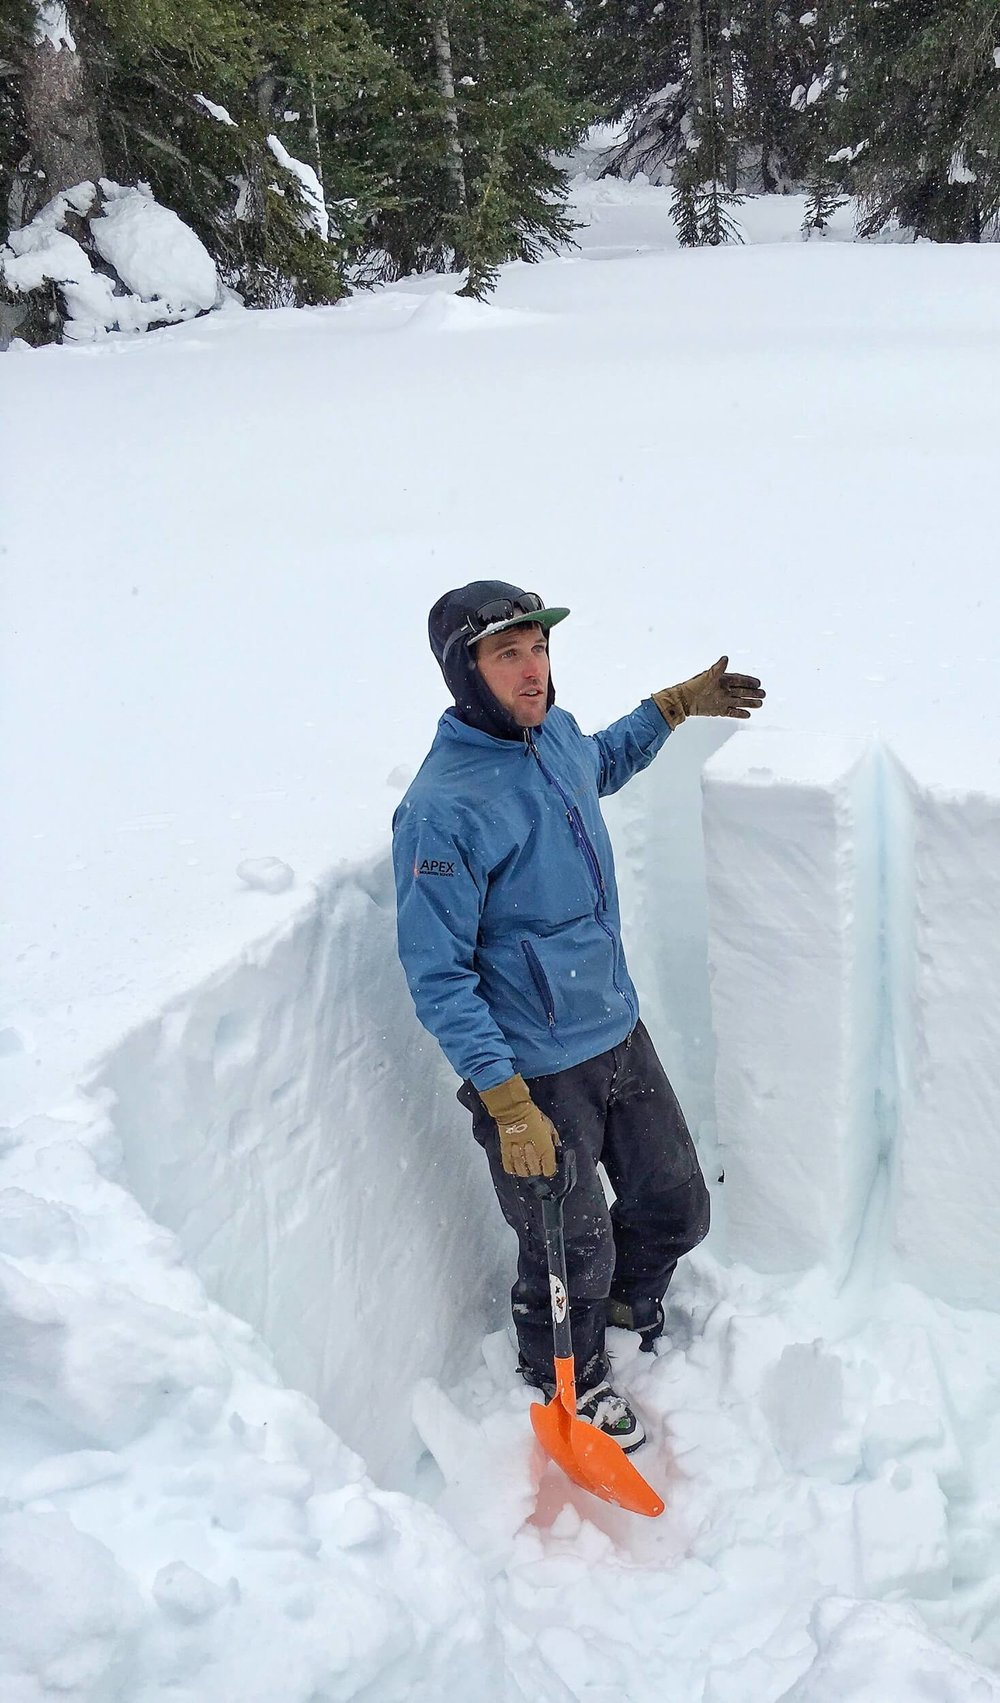 DIGGING OUT A COLUMN IN A SNOW PIT FOR SAMPLING